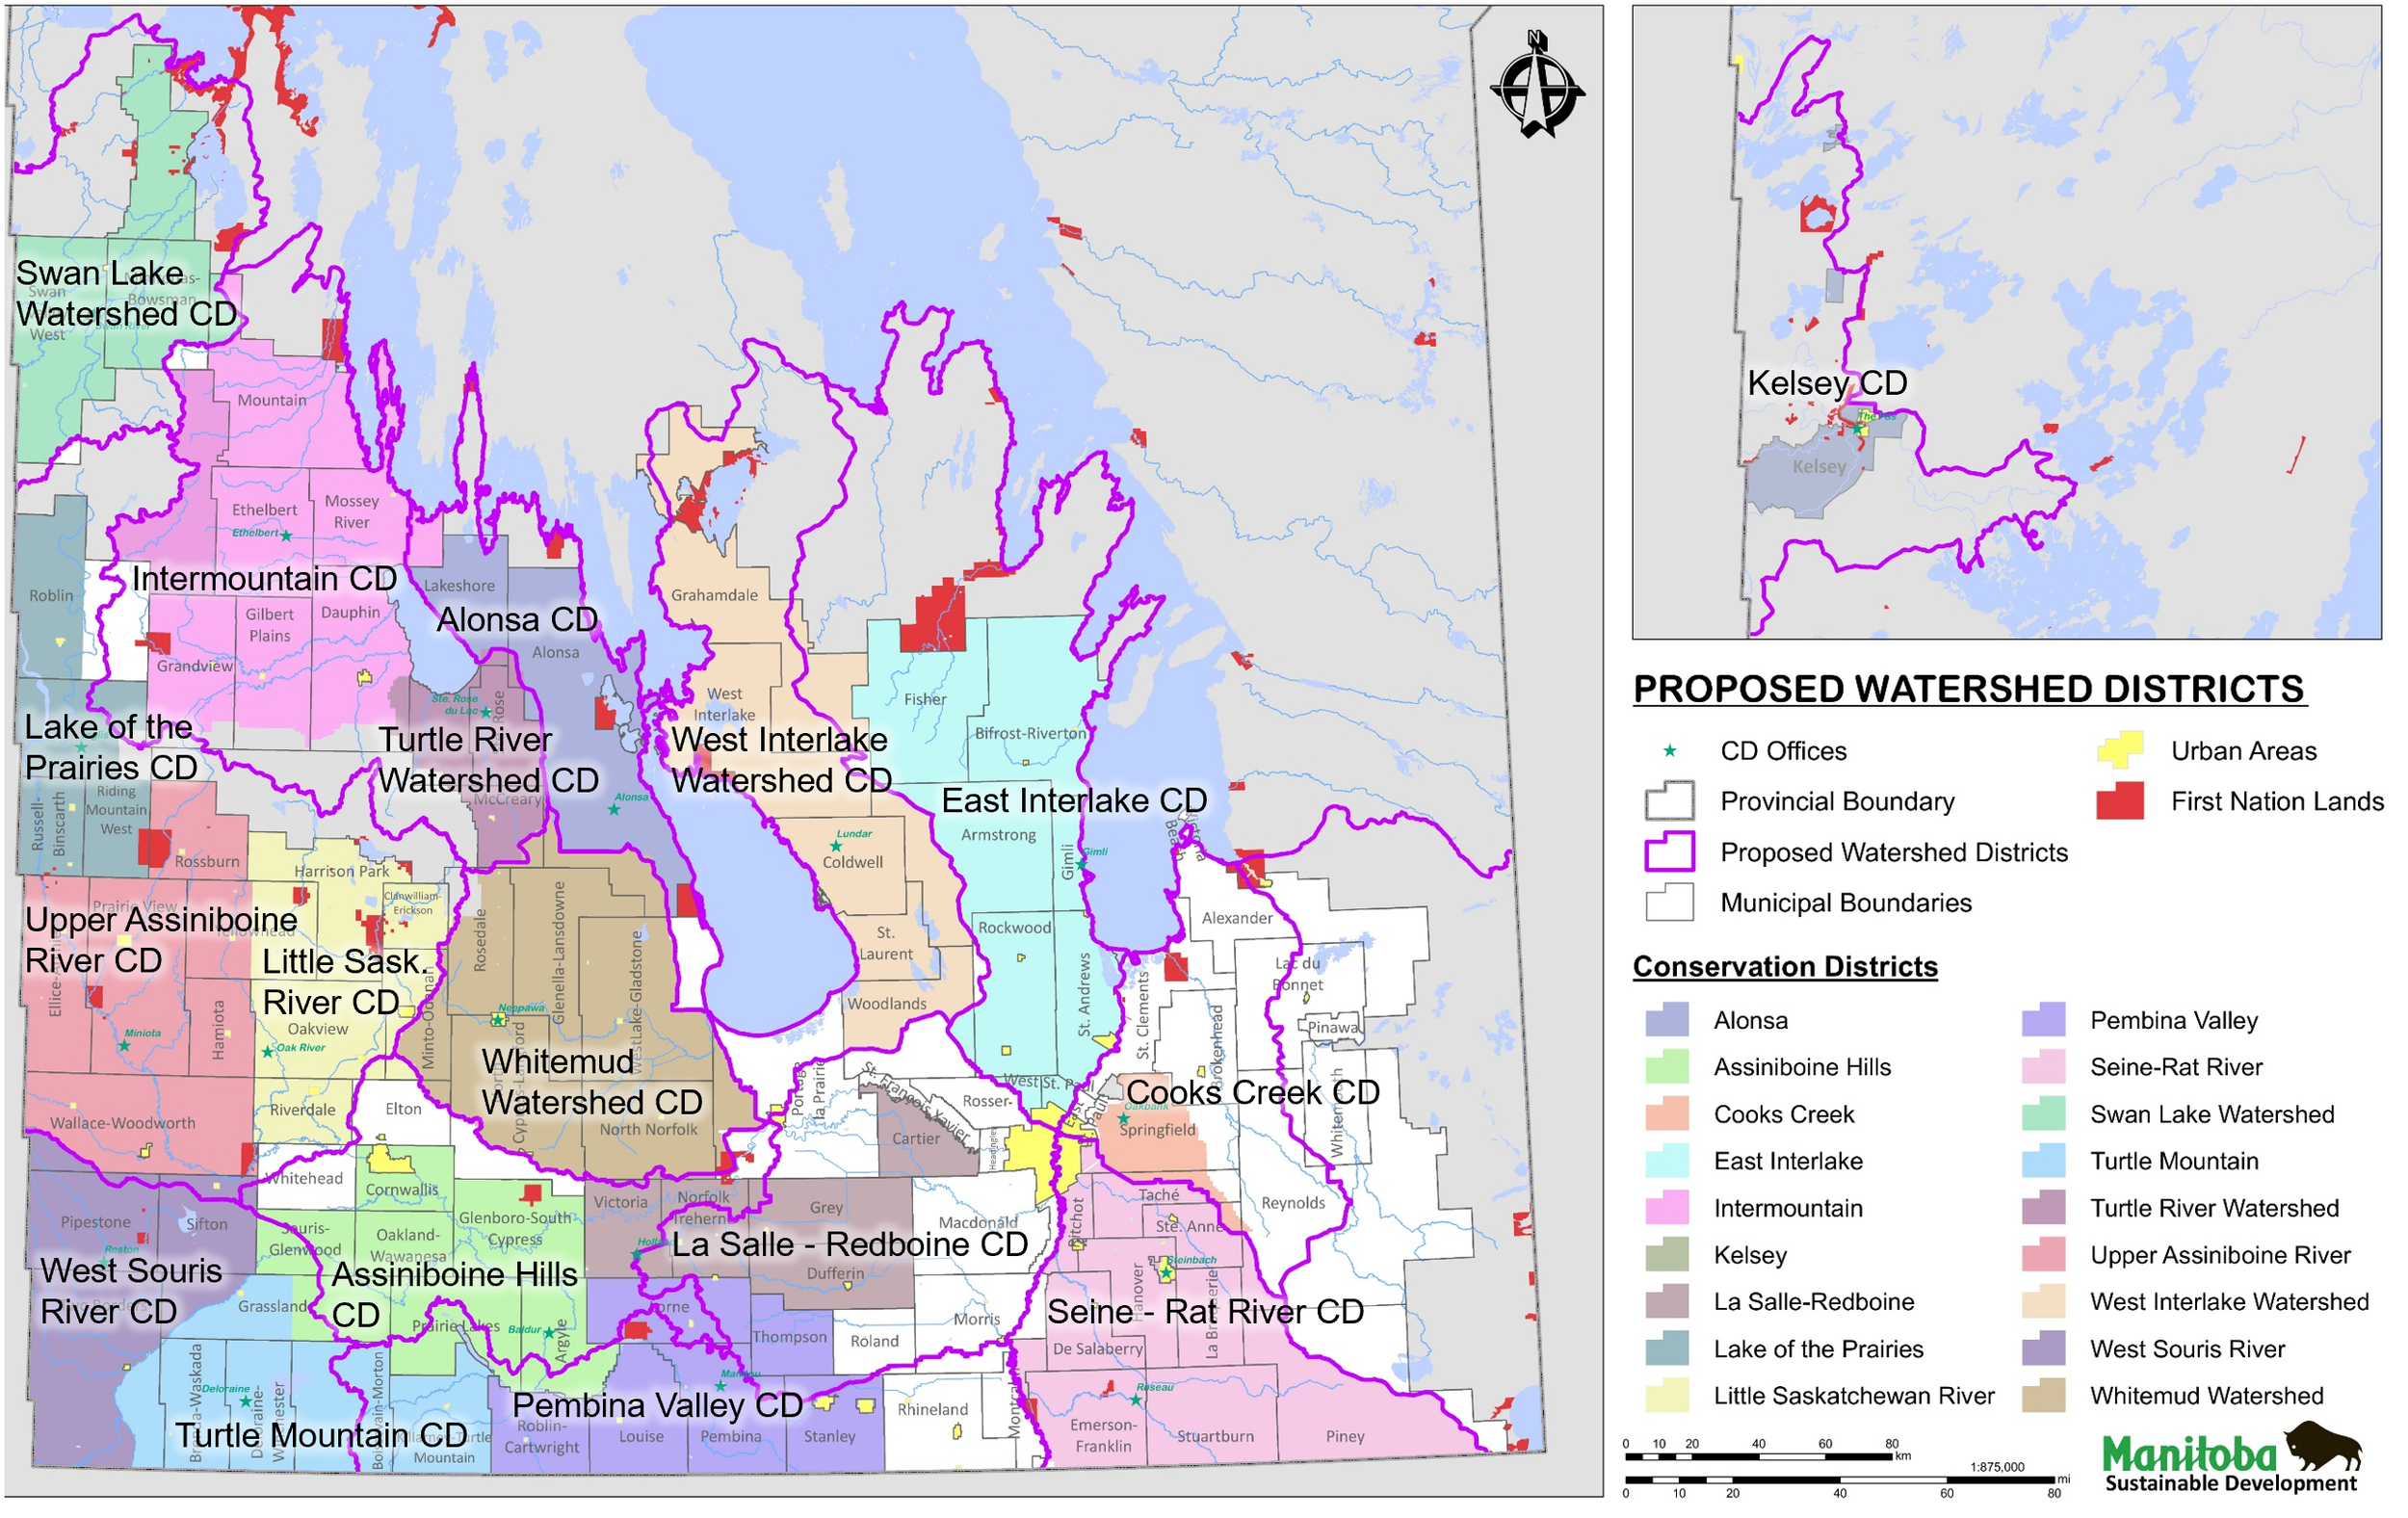 conservation-districts-and-proposed-watershed-districts